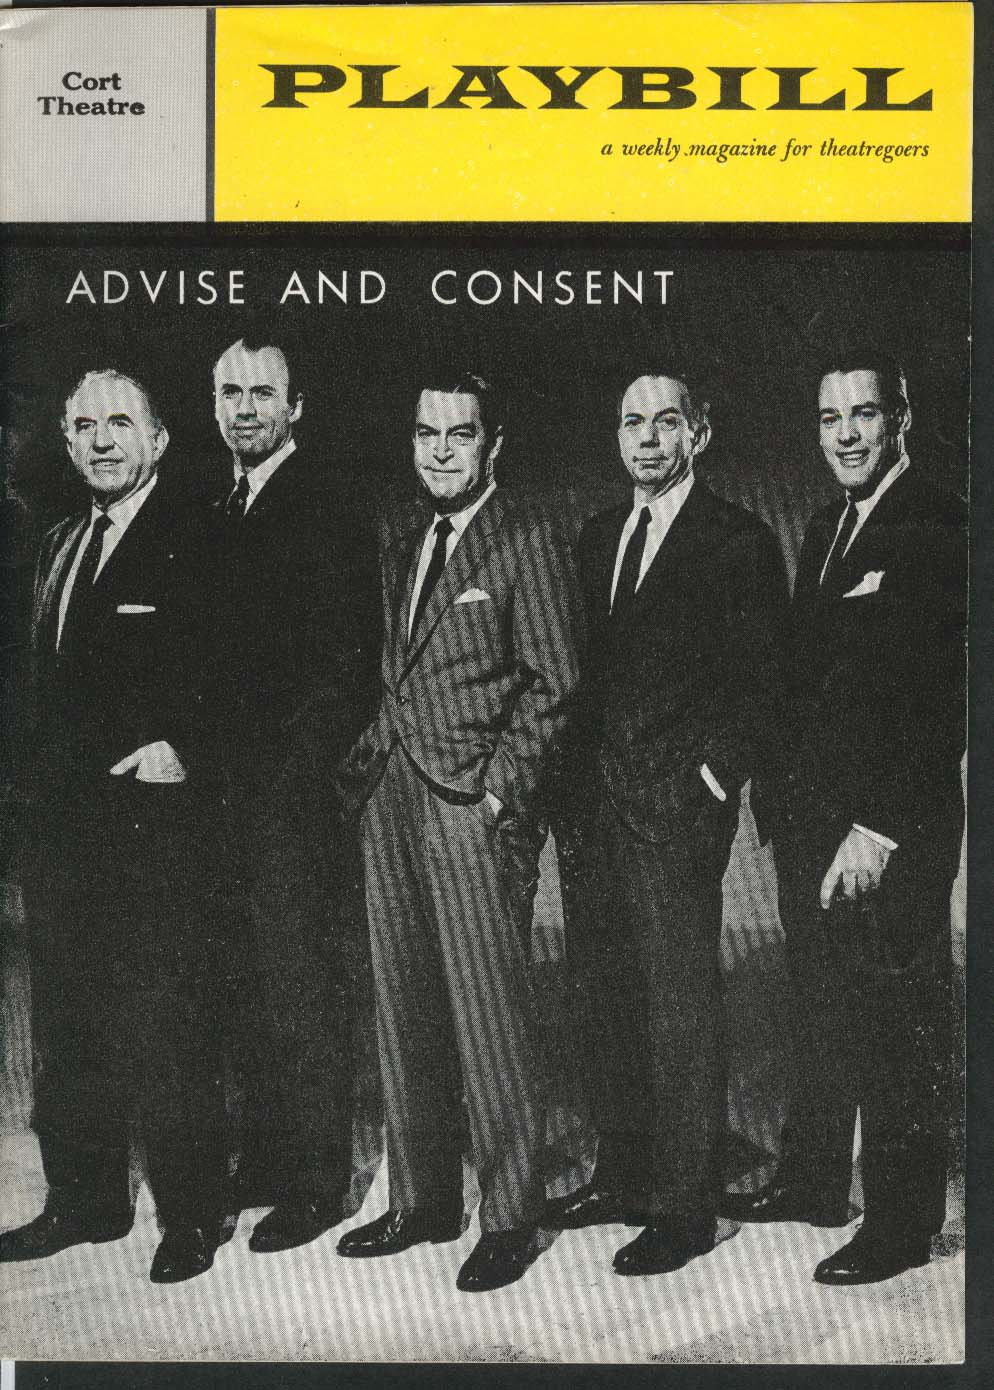 Advise and Consent Playbill 3/6/61 Ed Begley Richard Kiley Kevin McCarthy Cort